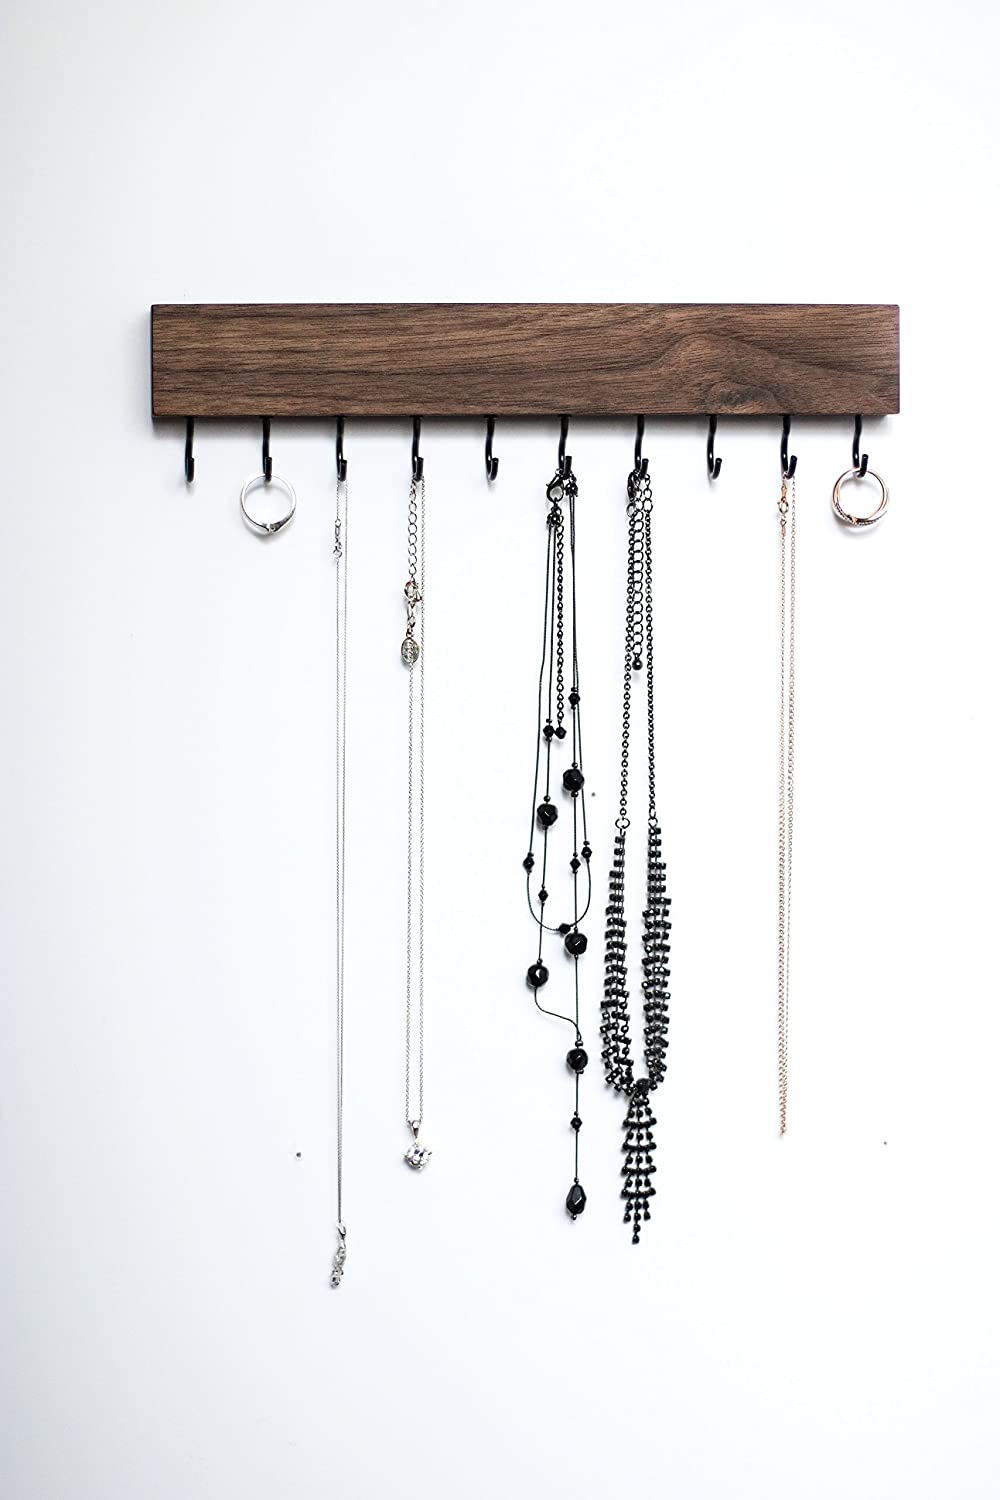 SOLID WALNUT WOOD Wall Jewelry Organizer/Necklace Handmade Holder Hooks Key Holder Hanging Stand Rustic Decor/Best gift idea / 10 black hooks